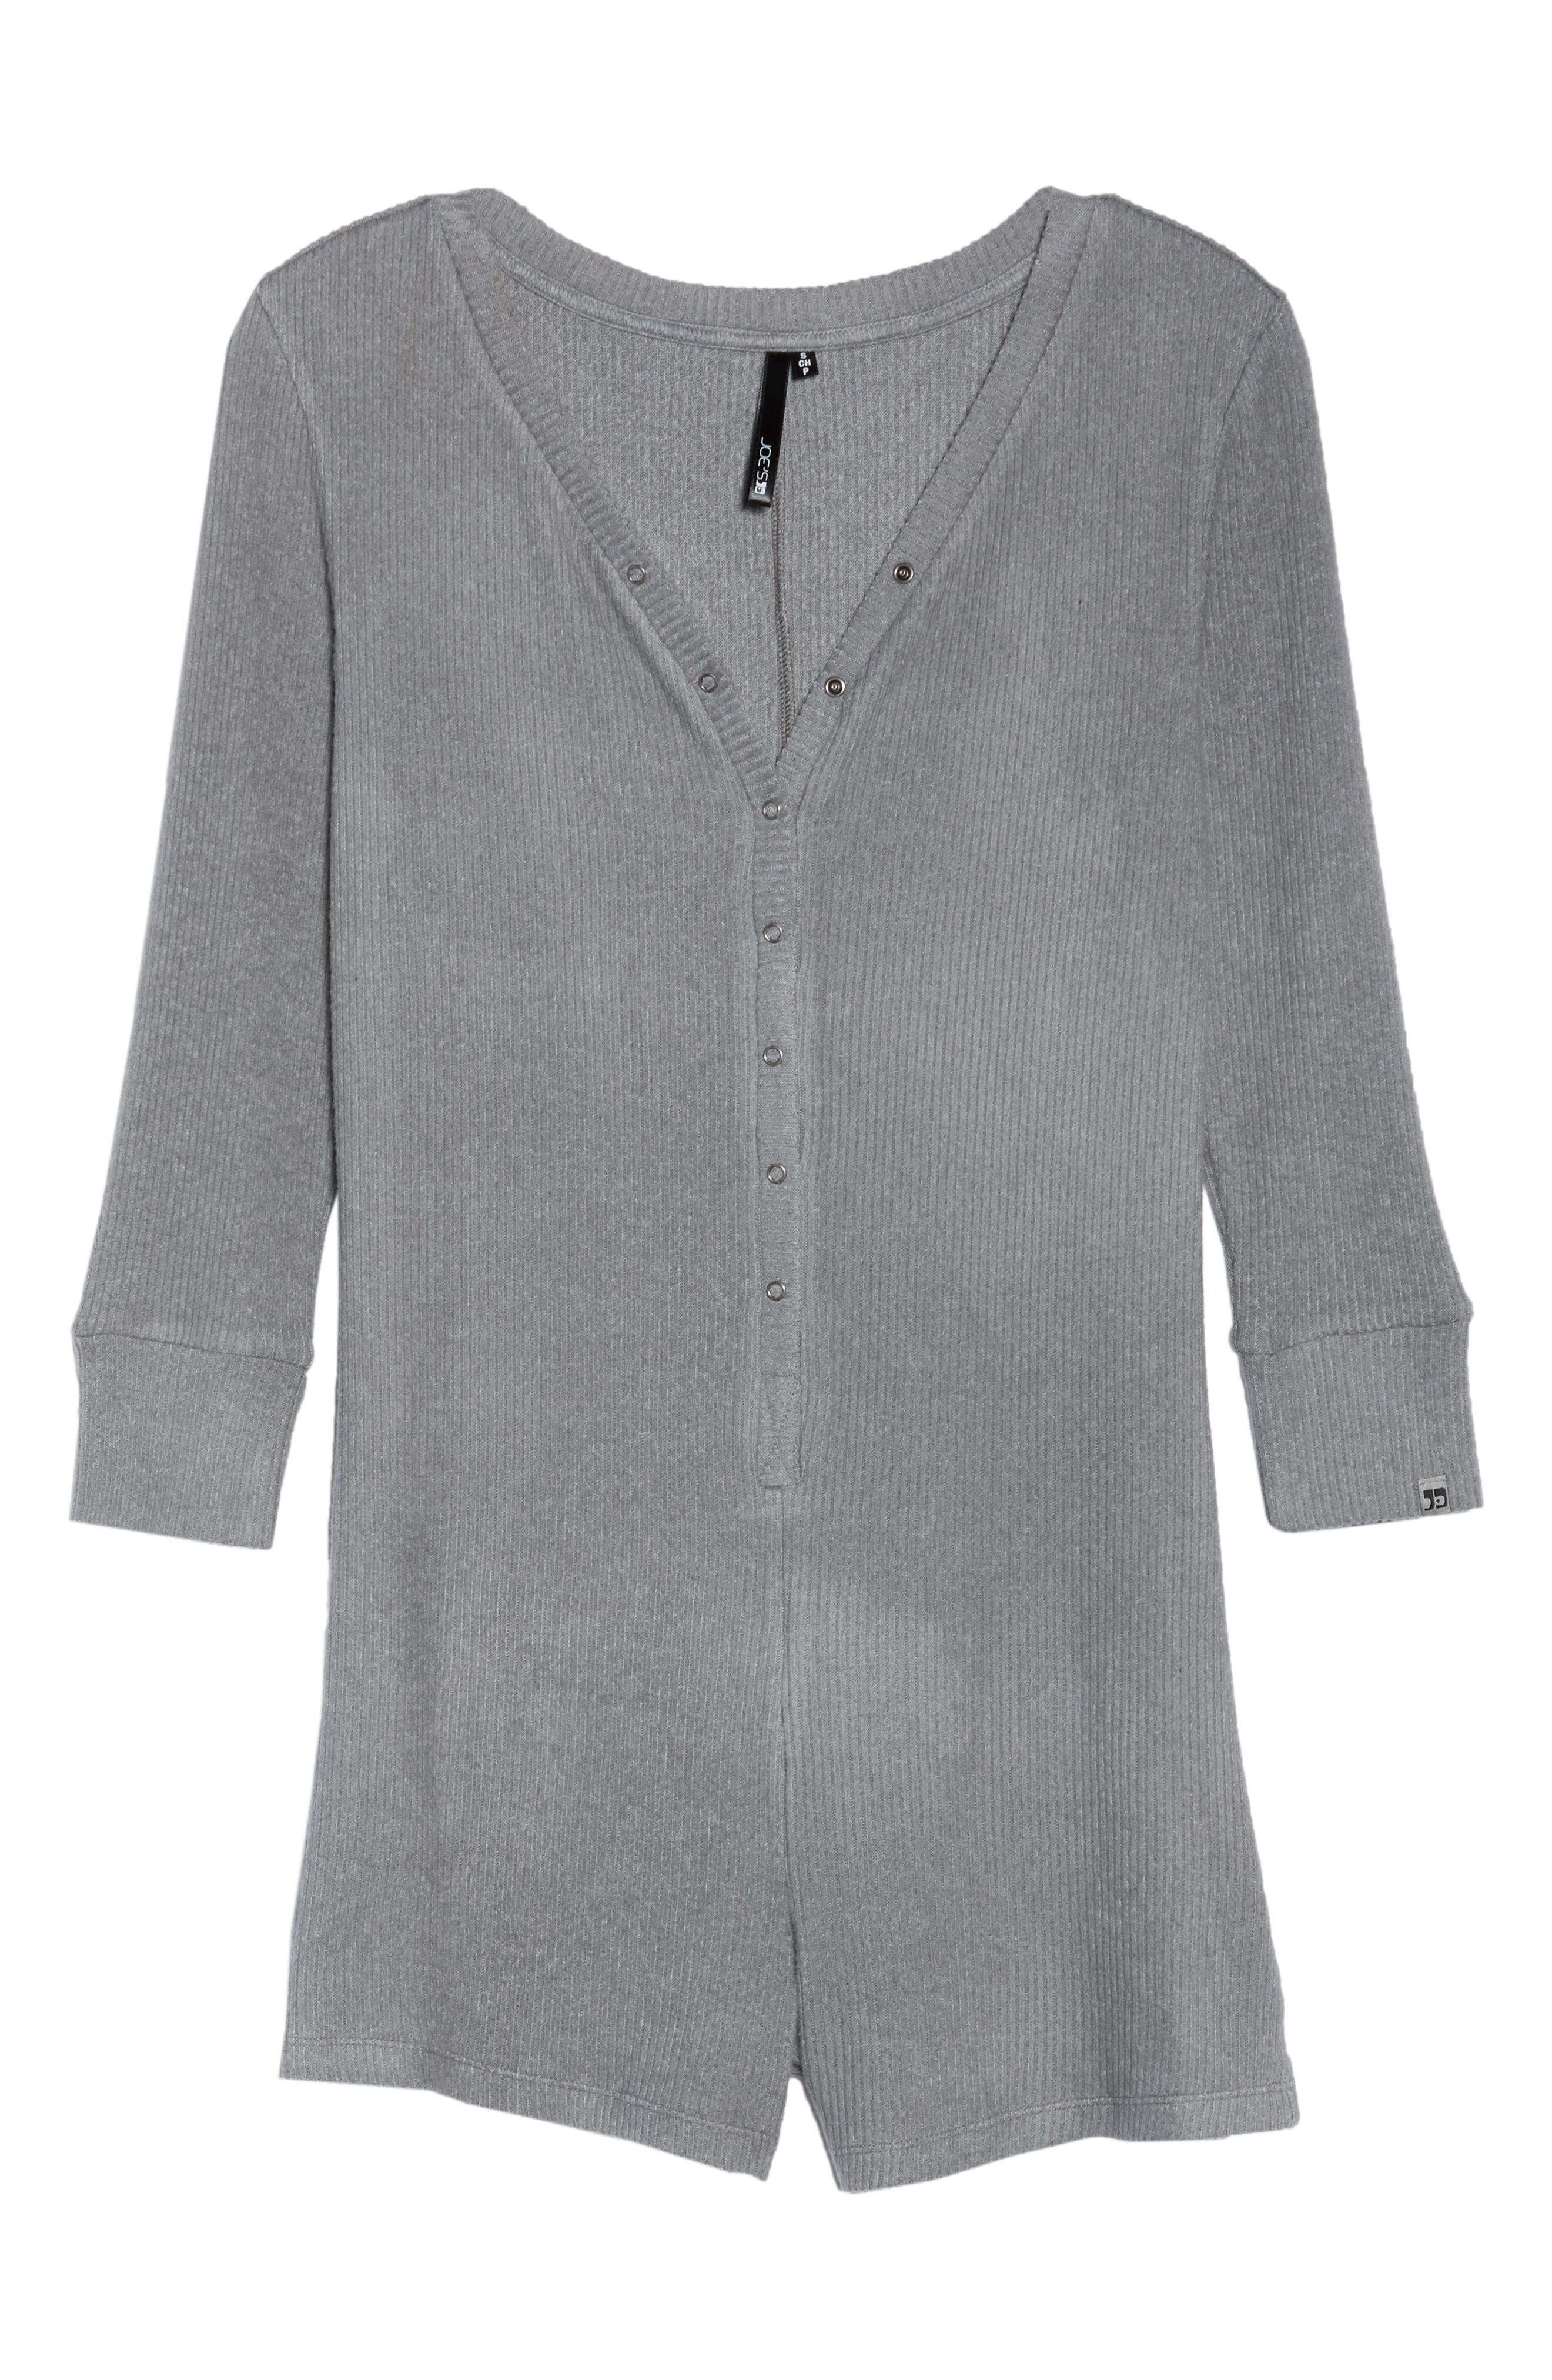 Joes' Henley Romper,                             Alternate thumbnail 6, color,                             HEATHER GRAY